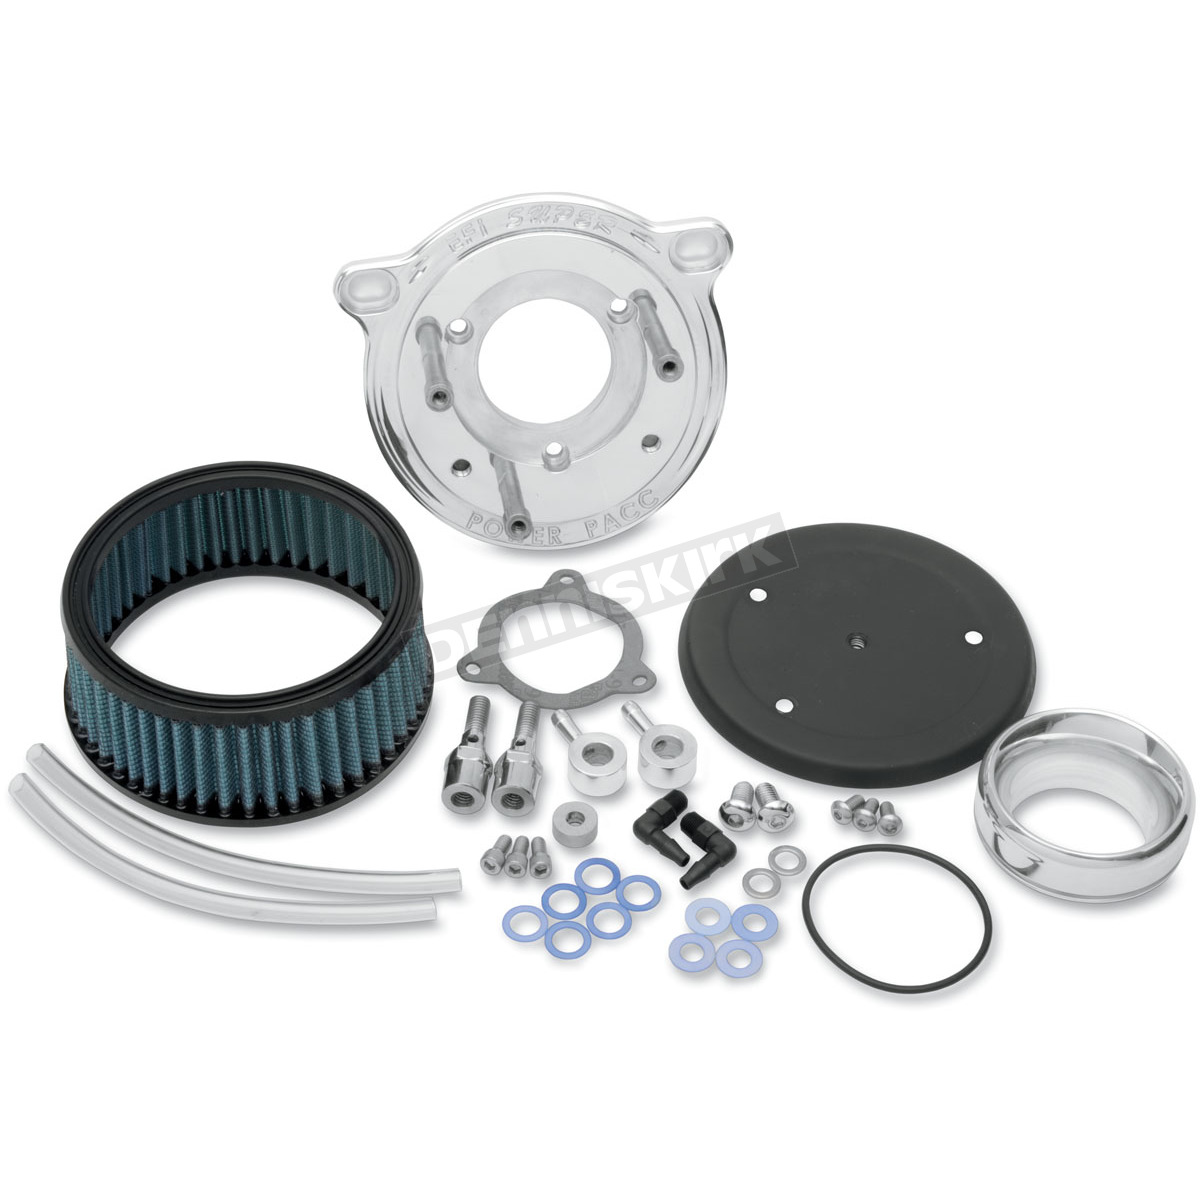 Doherty Air Cleaner : Doherty power pacc air cleaner for use with oem cover